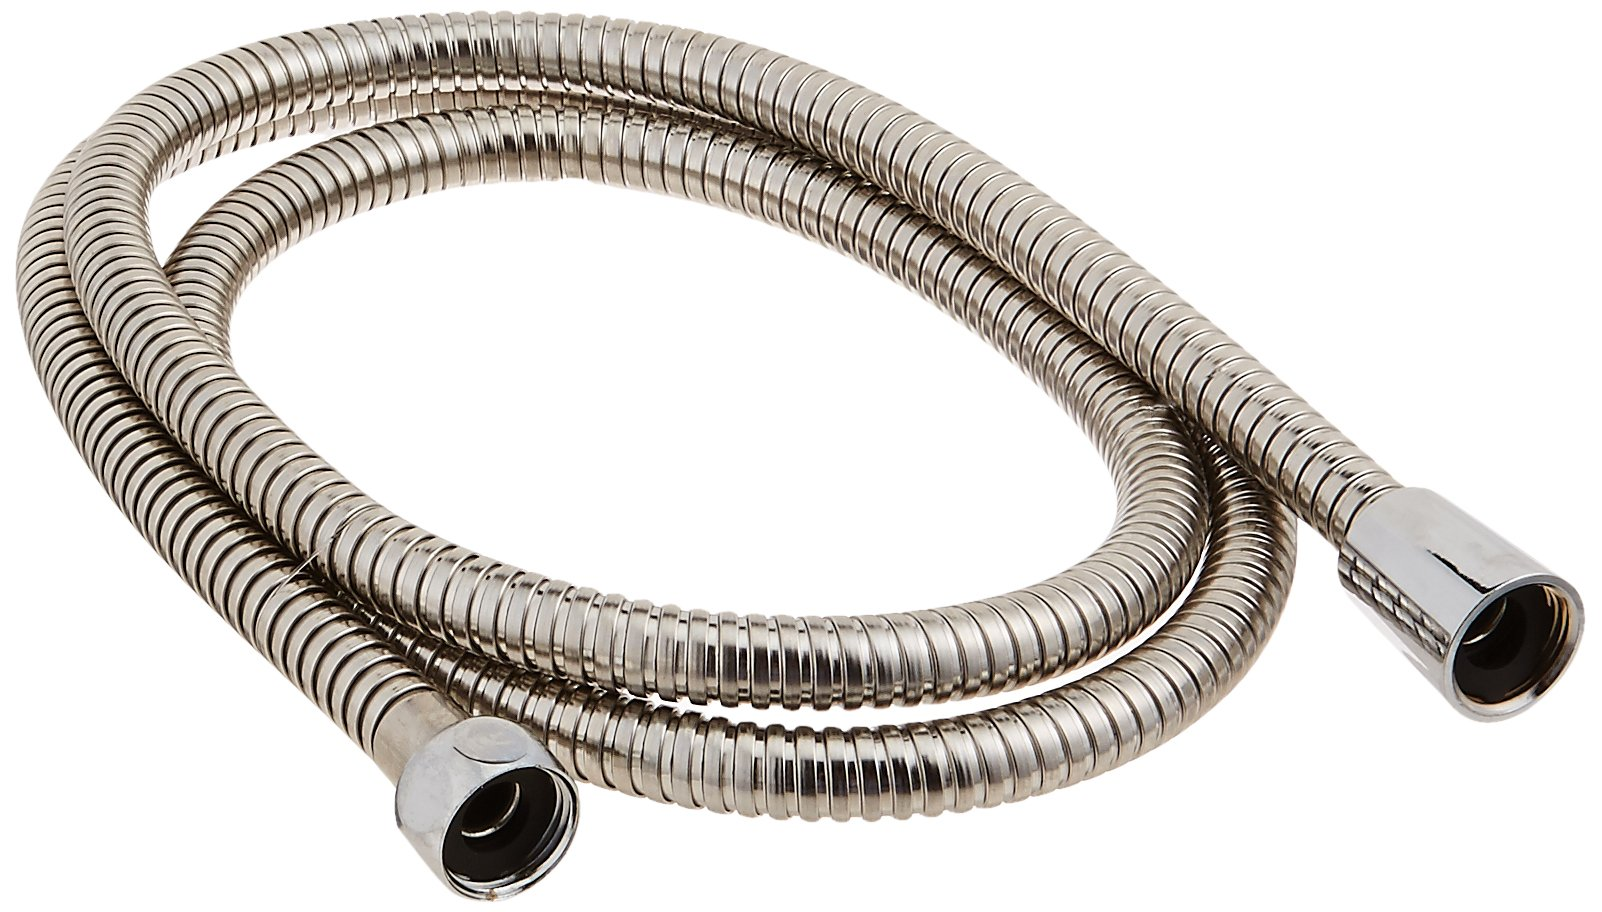 Delta Faucet U495S-69-PK 69-Inch Stainless Steel Hose, Chrome by DELTA FAUCET